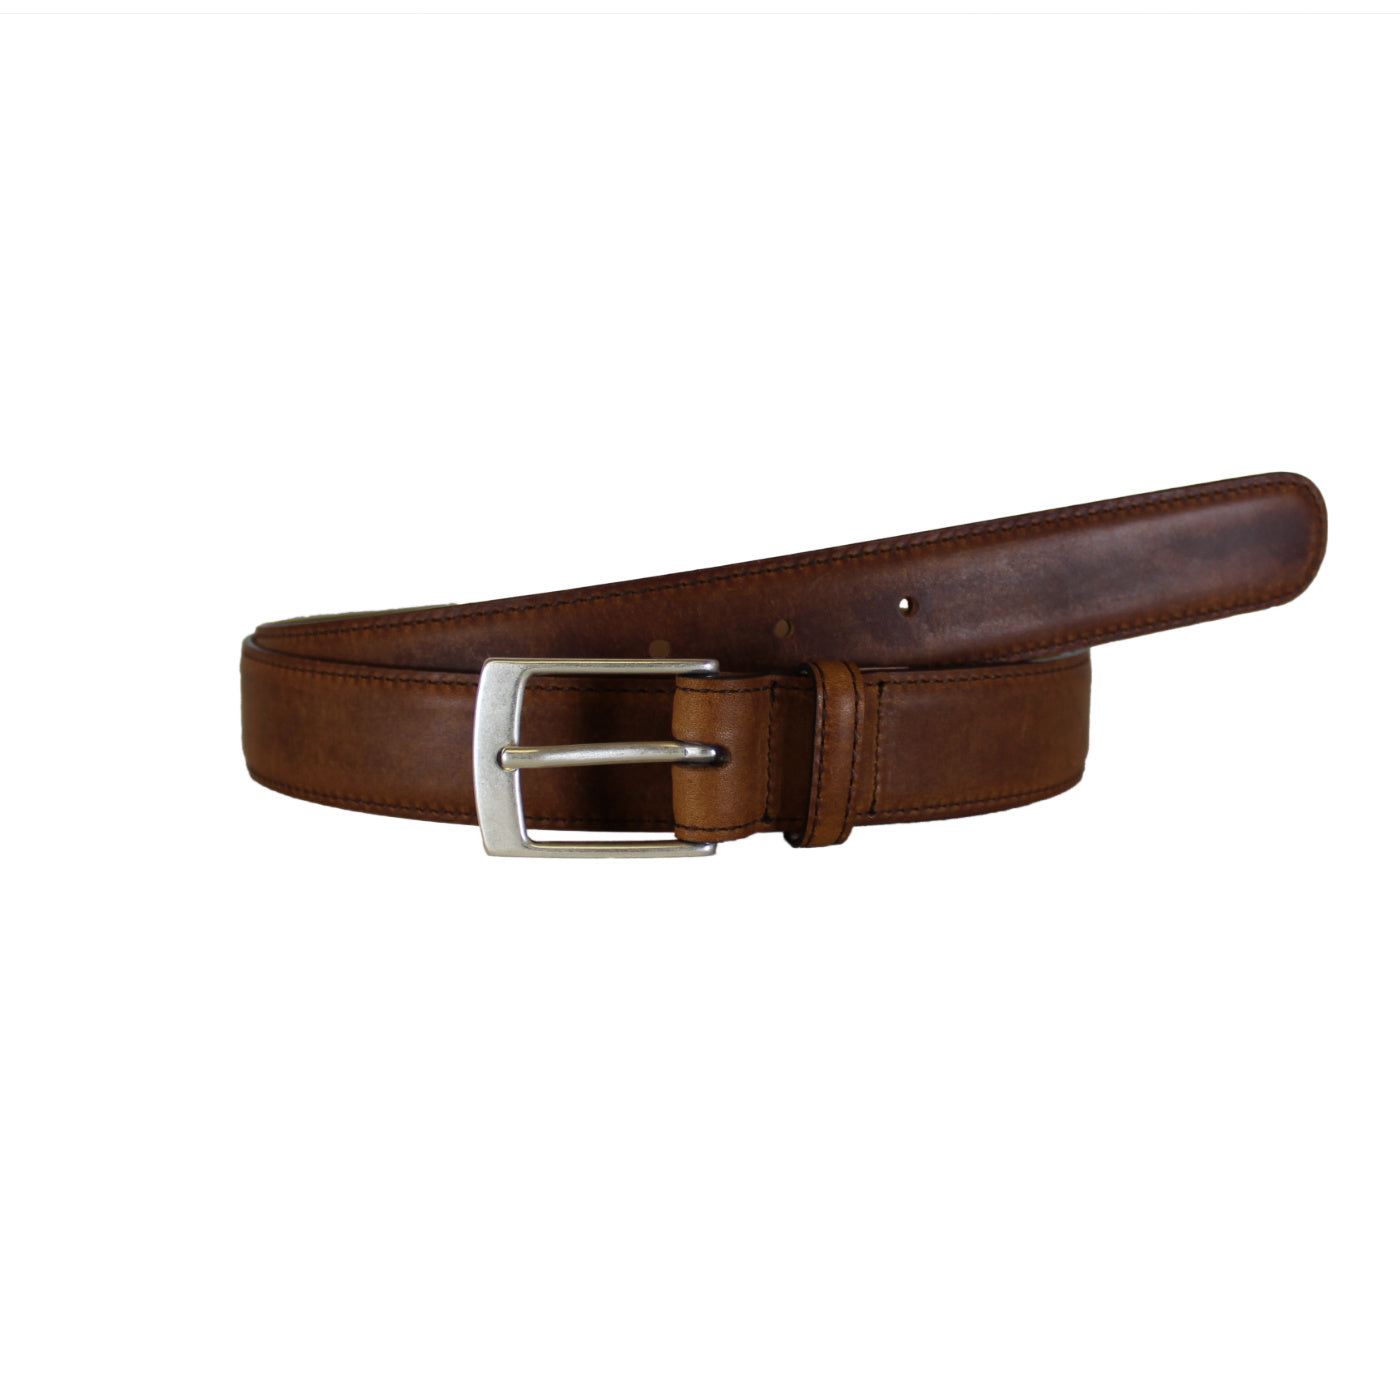 "Brown Dress Soft Vegetable Tanned Leather Belt (Width 30mm - 1¼"")"